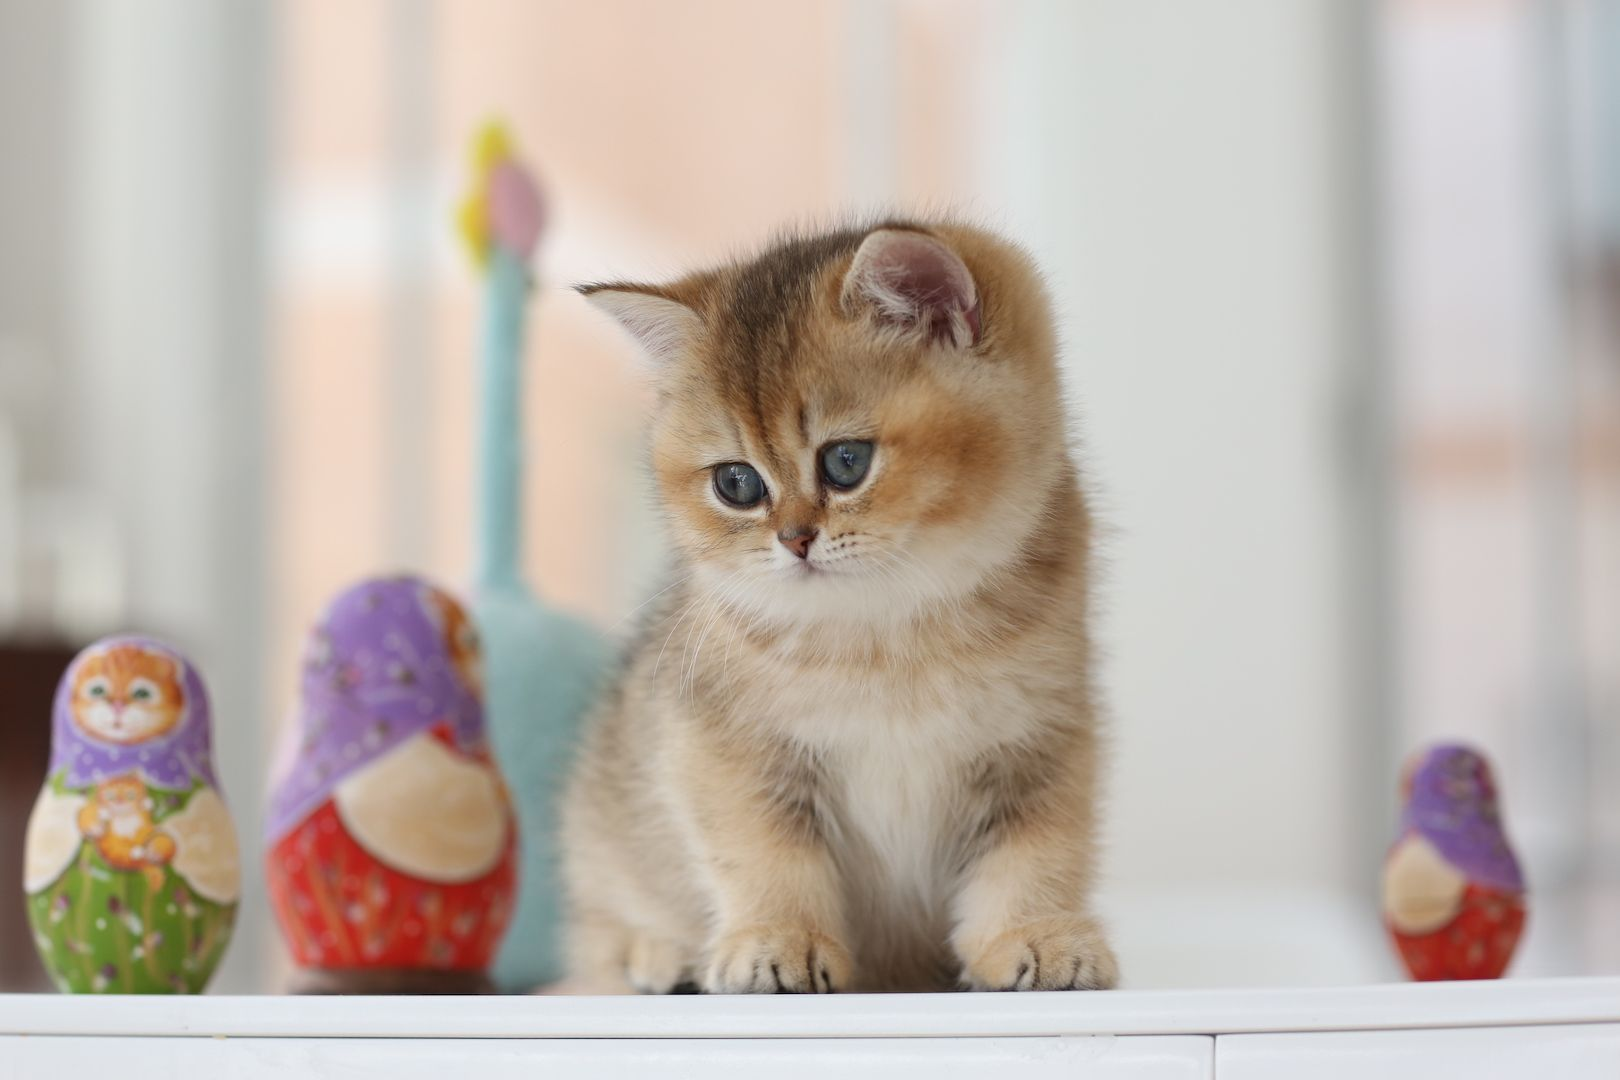 British Kitten Usa Russian Doll British Shorthair Kitten Golden Shaded Color With Green Eyes Fe British Shorthair Kittens British Shorthair Kitten For Sale